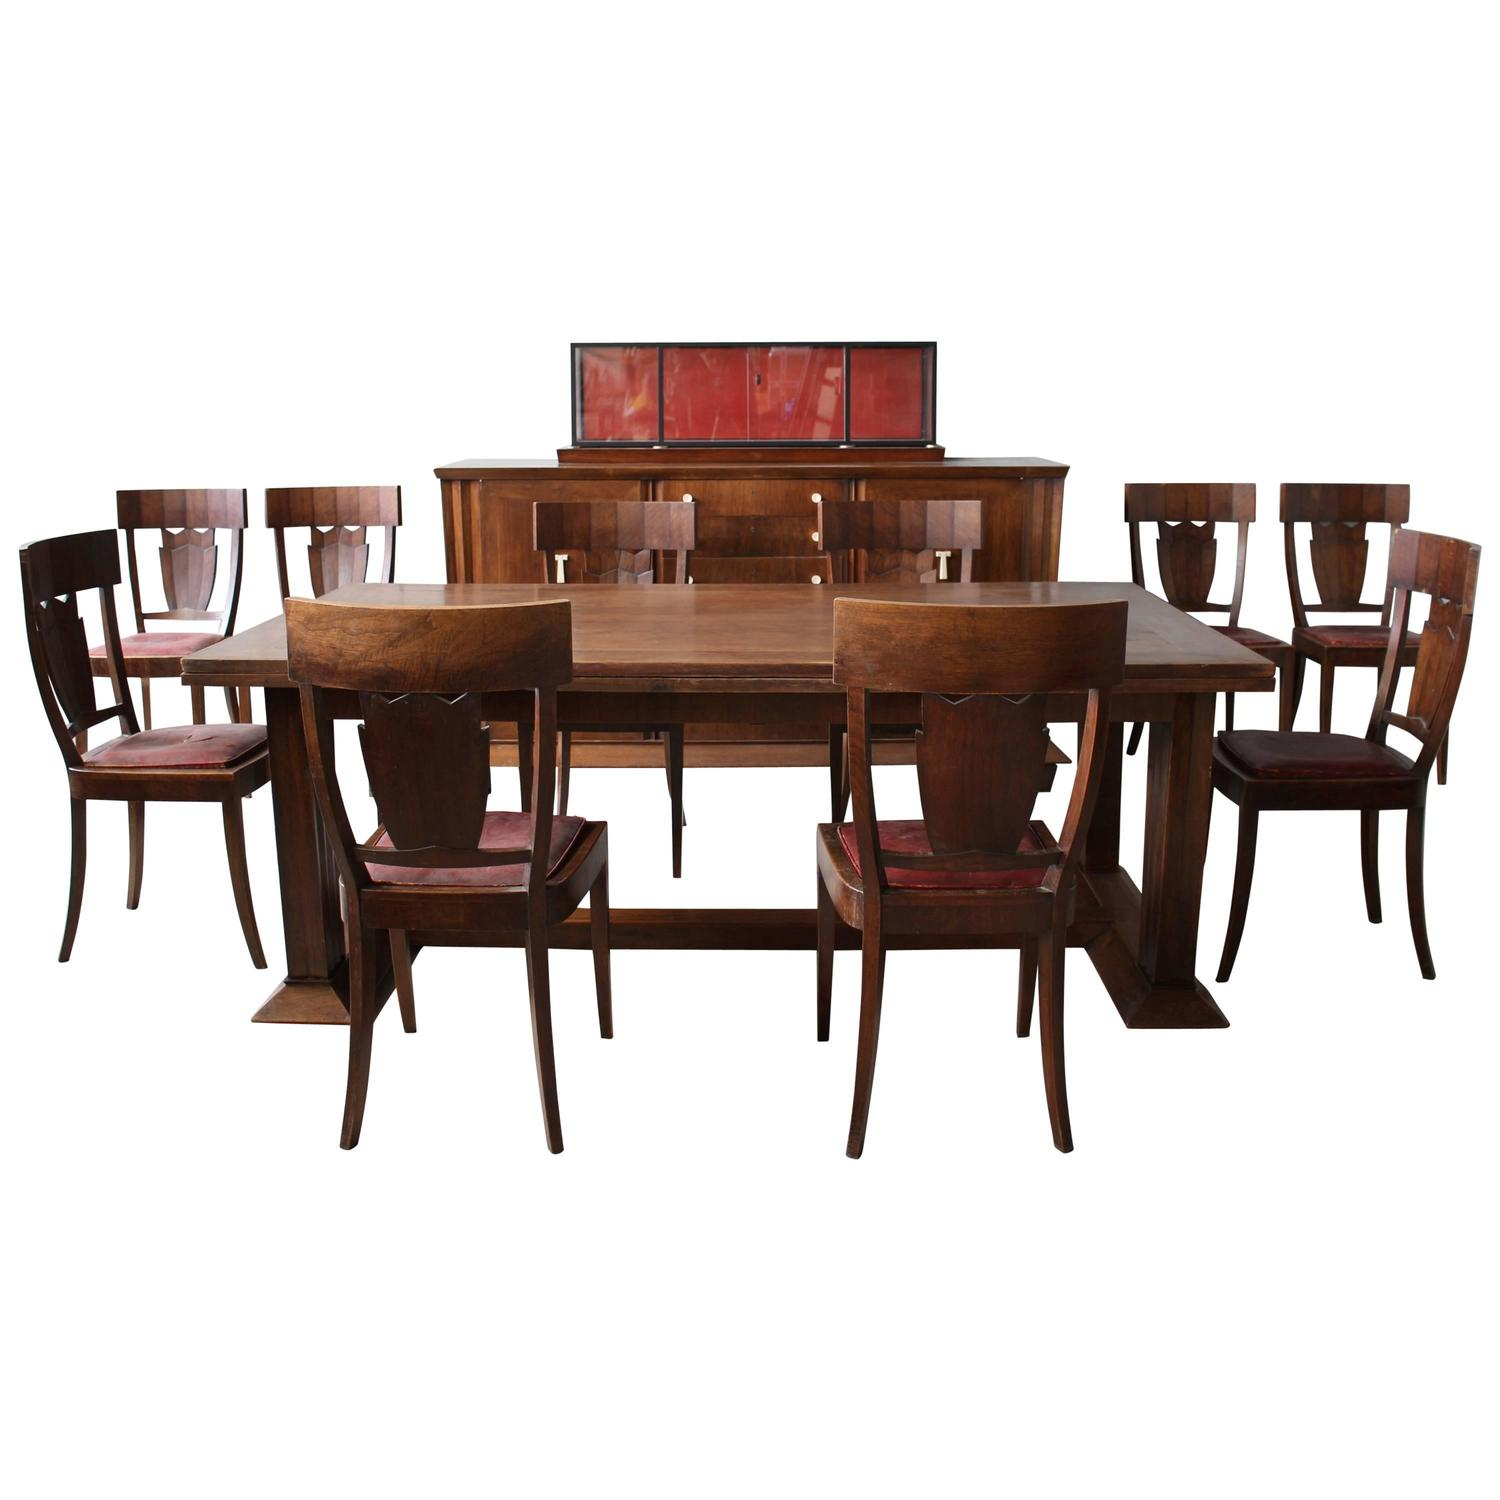 Rare French Art Deco Walnut Dining Room Set By Jean Charles Moreux U2013  Conjeaud U0026 Chappey